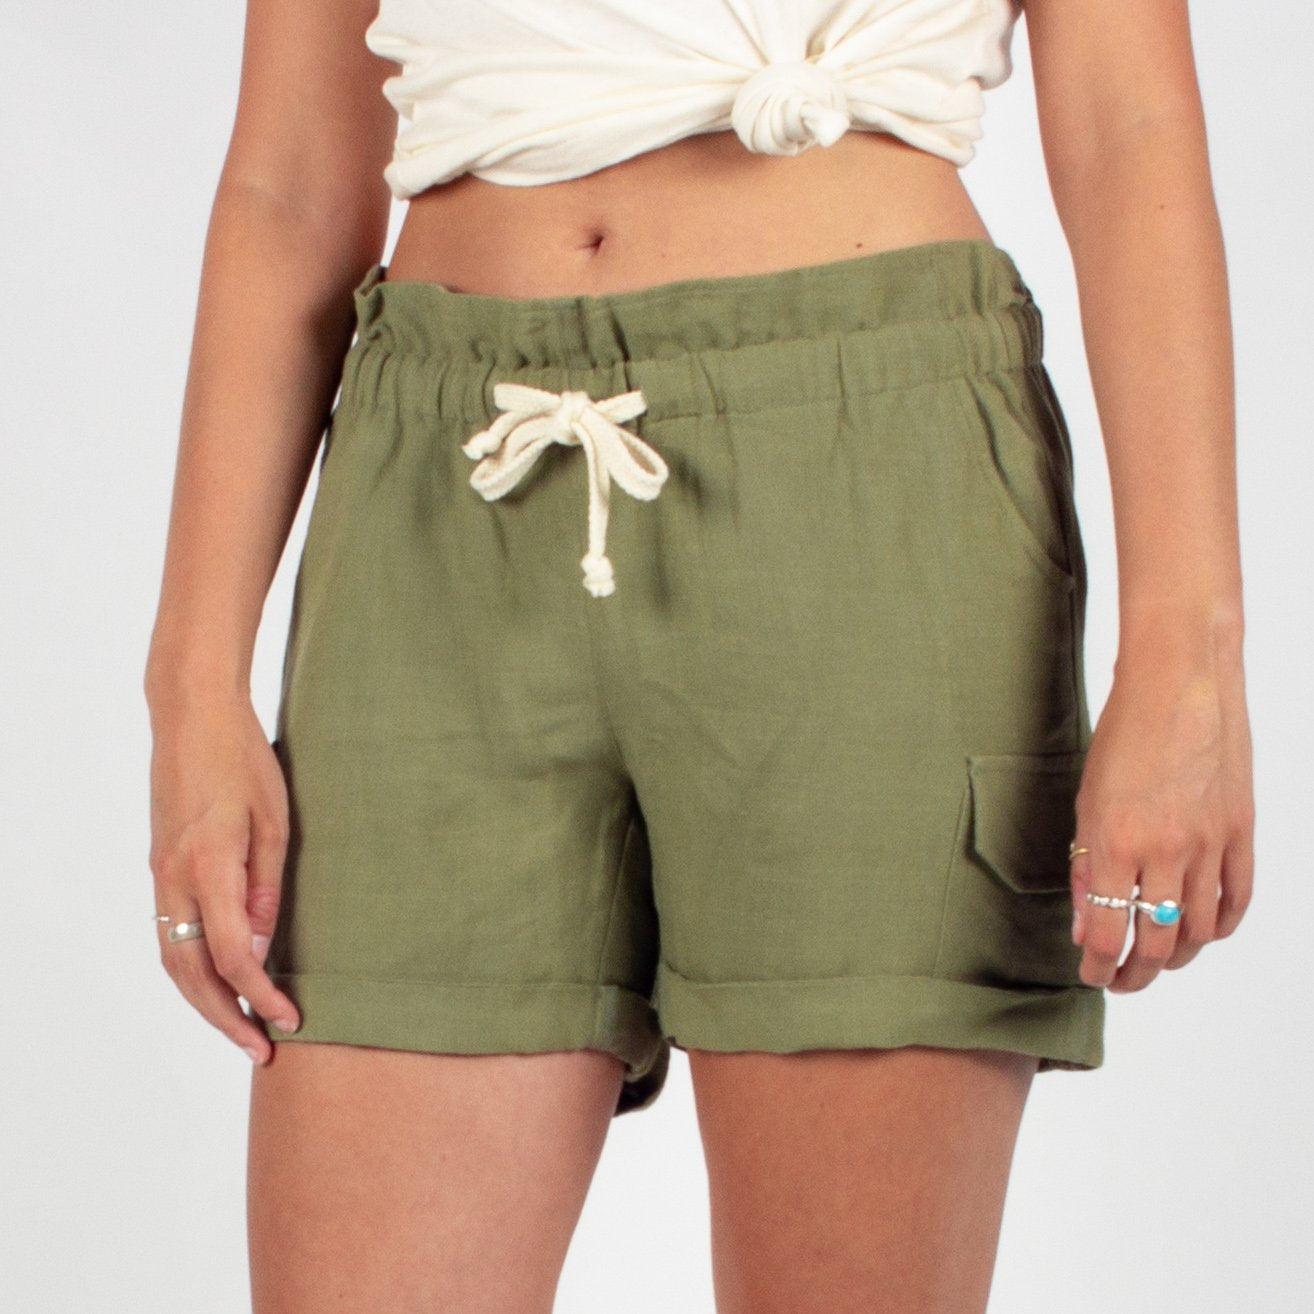 Searcher Shorts - Green image 2